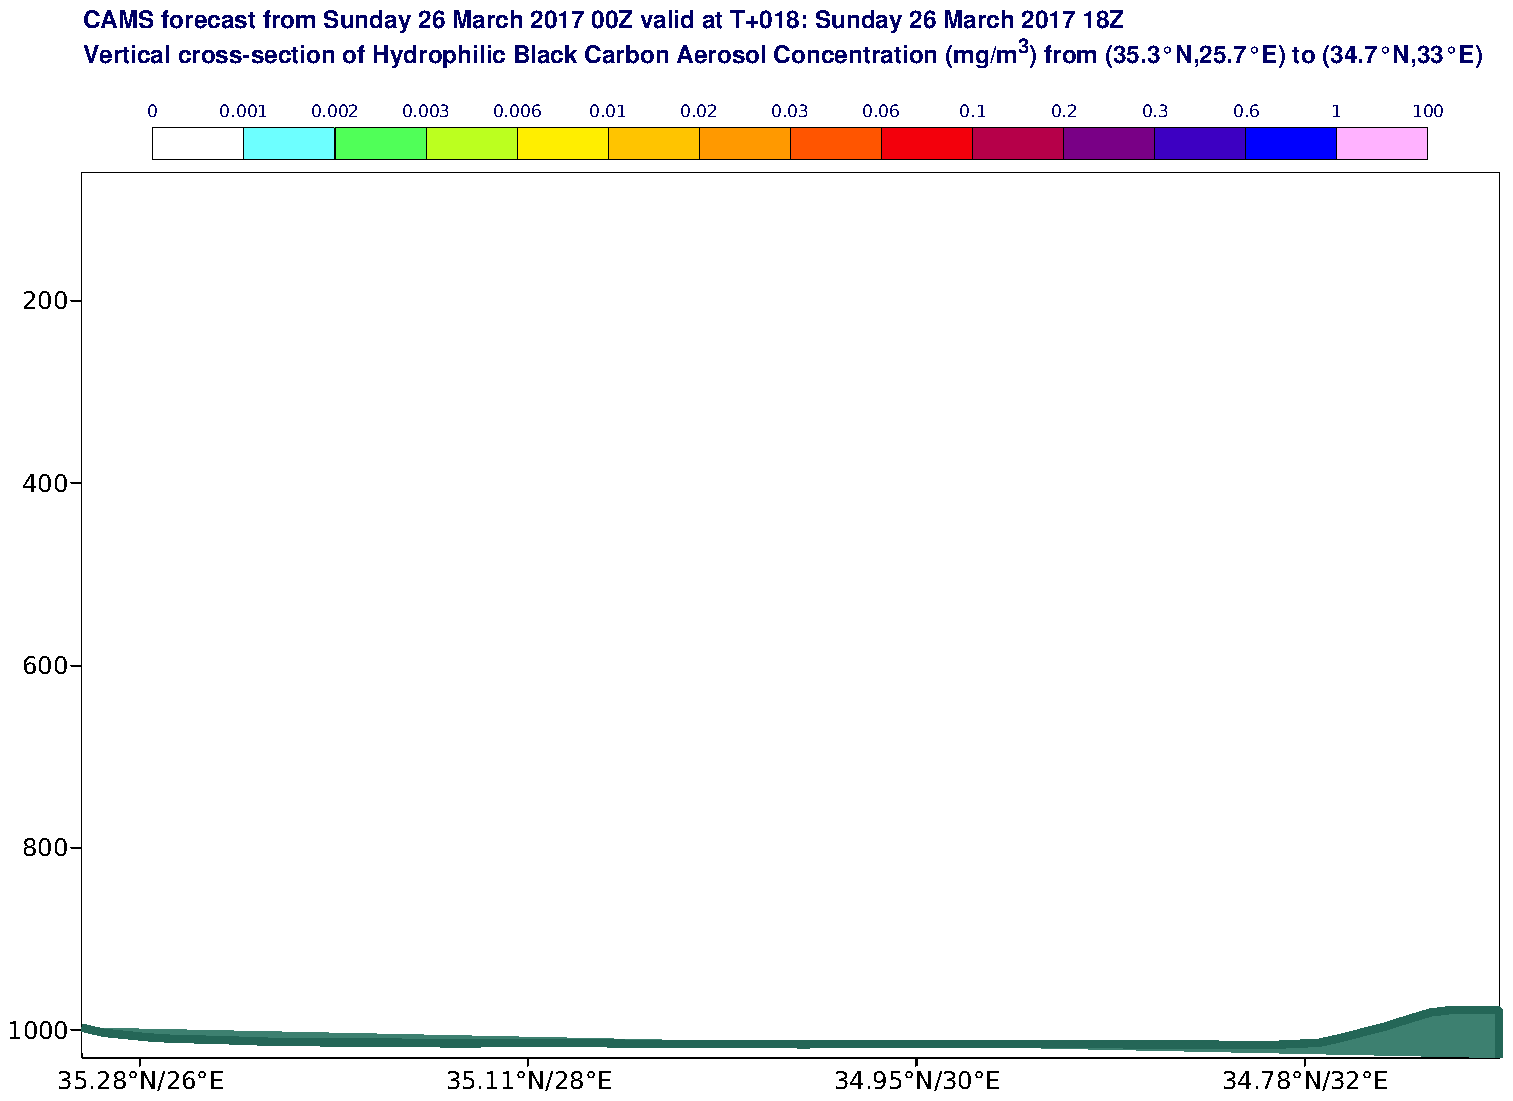 Vertical cross-section of Hydrophilic Black Carbon Aerosol Concentration (mg/m3) valid at T18 - 2017-03-26 18:00